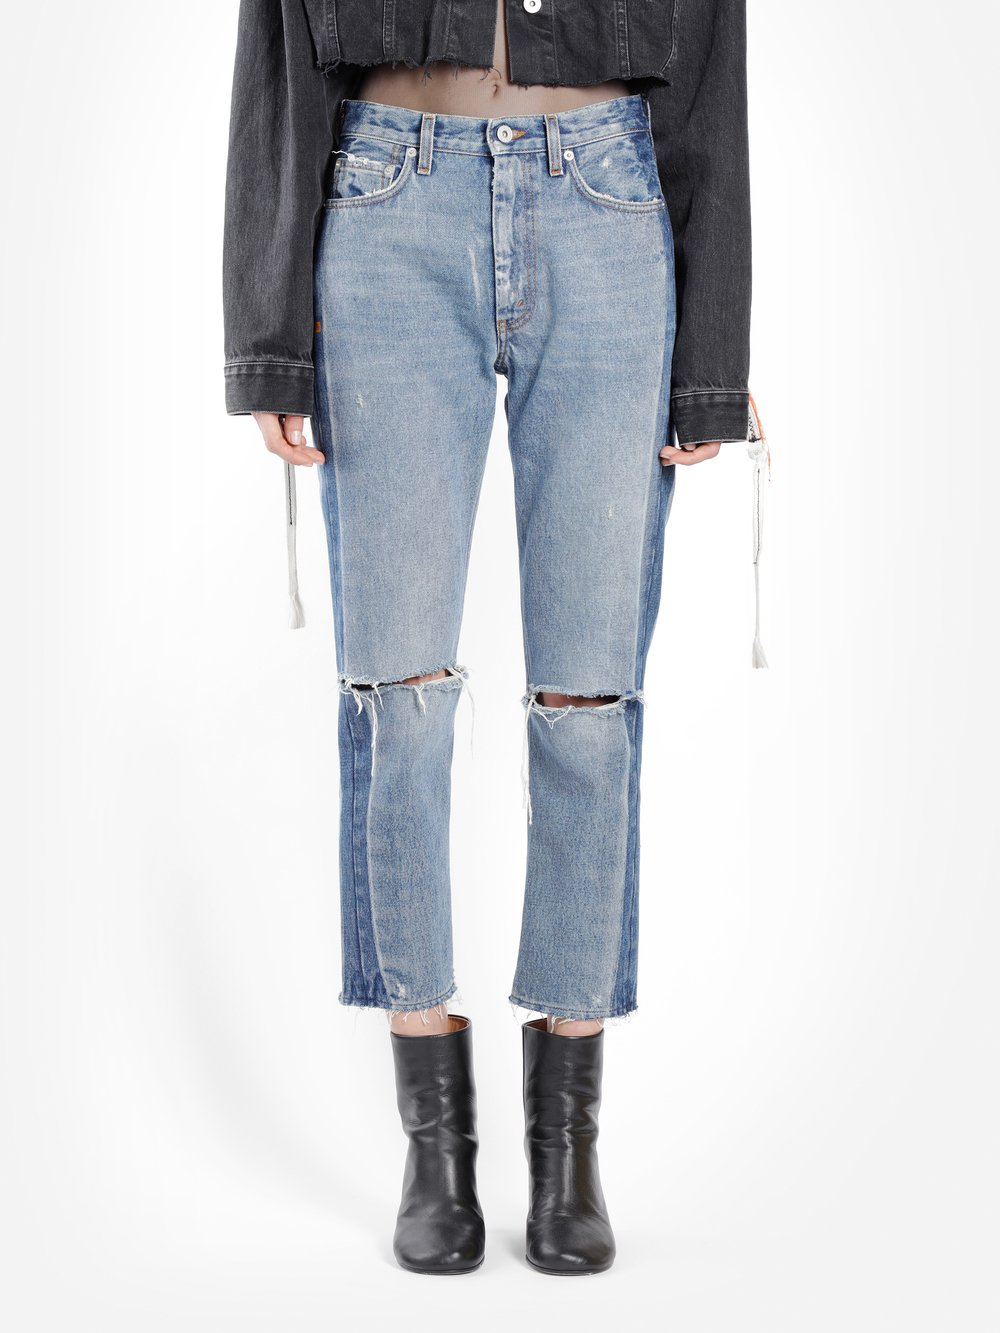 HERON PRESTON WOMEN'S BLUE CTNMB 2TONE DENIM